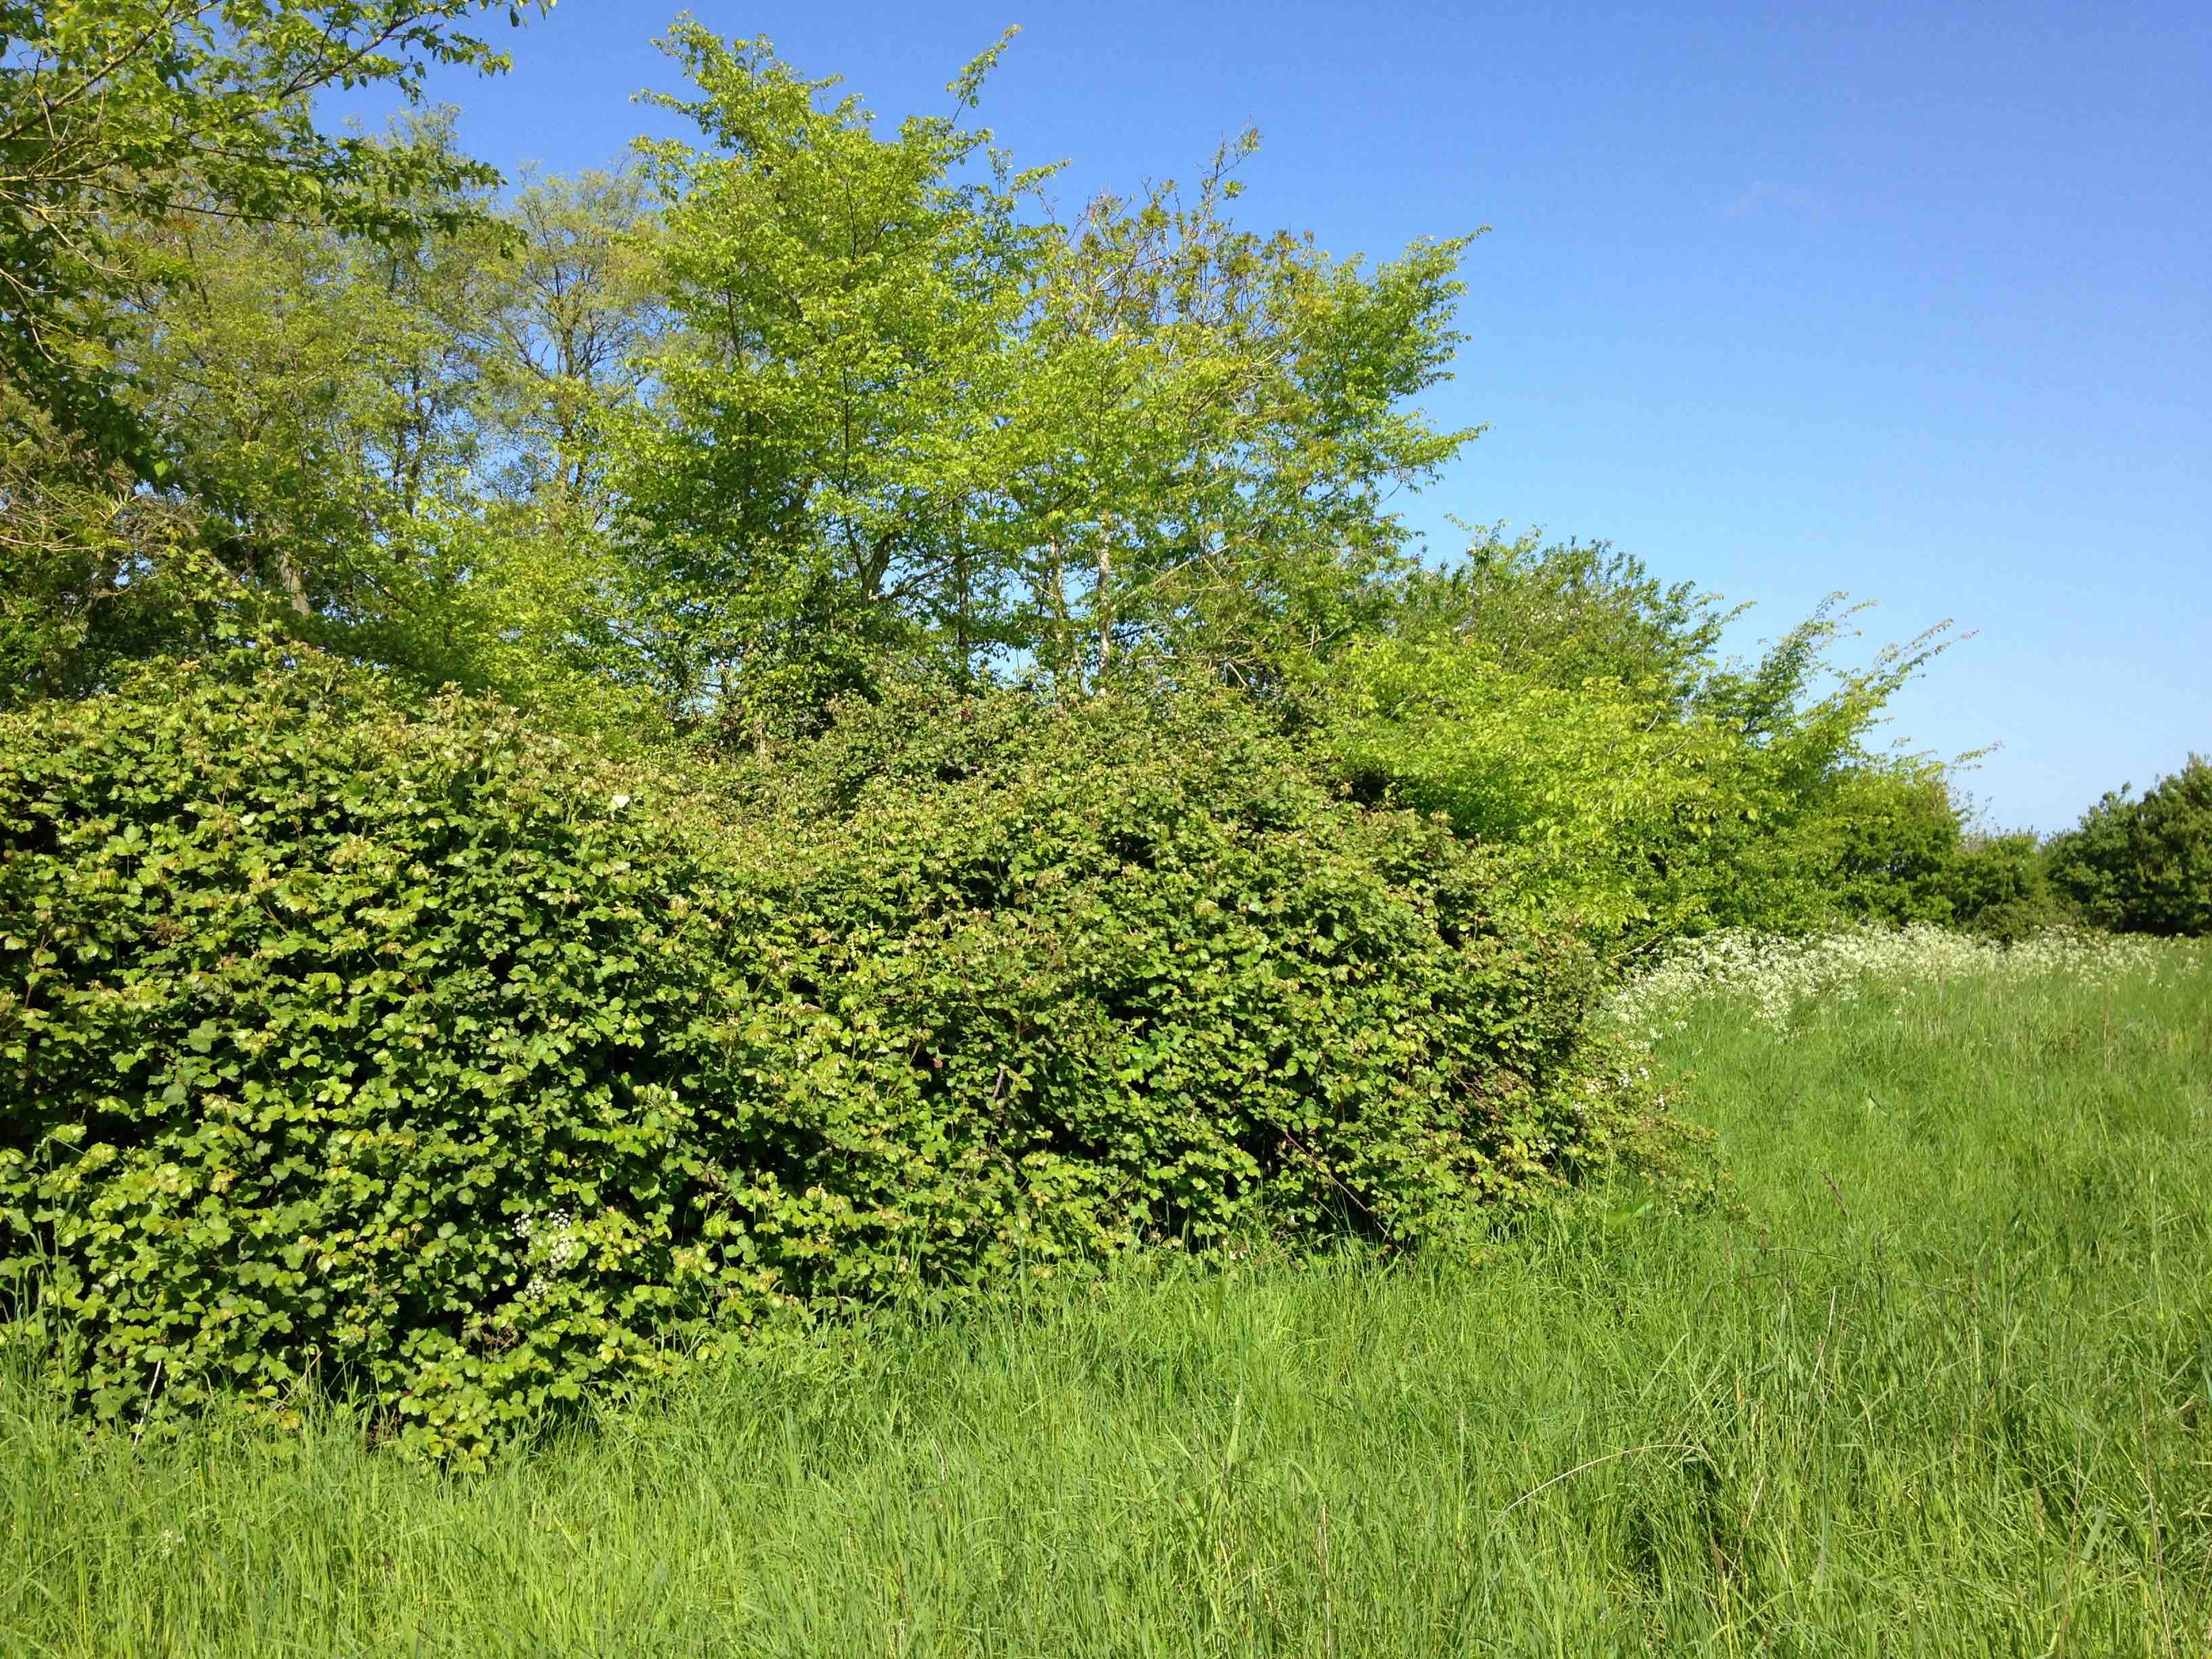 planting areas of seedrich plants close to good nesting habitat such as this can increase the survival prospects of young turtle doves